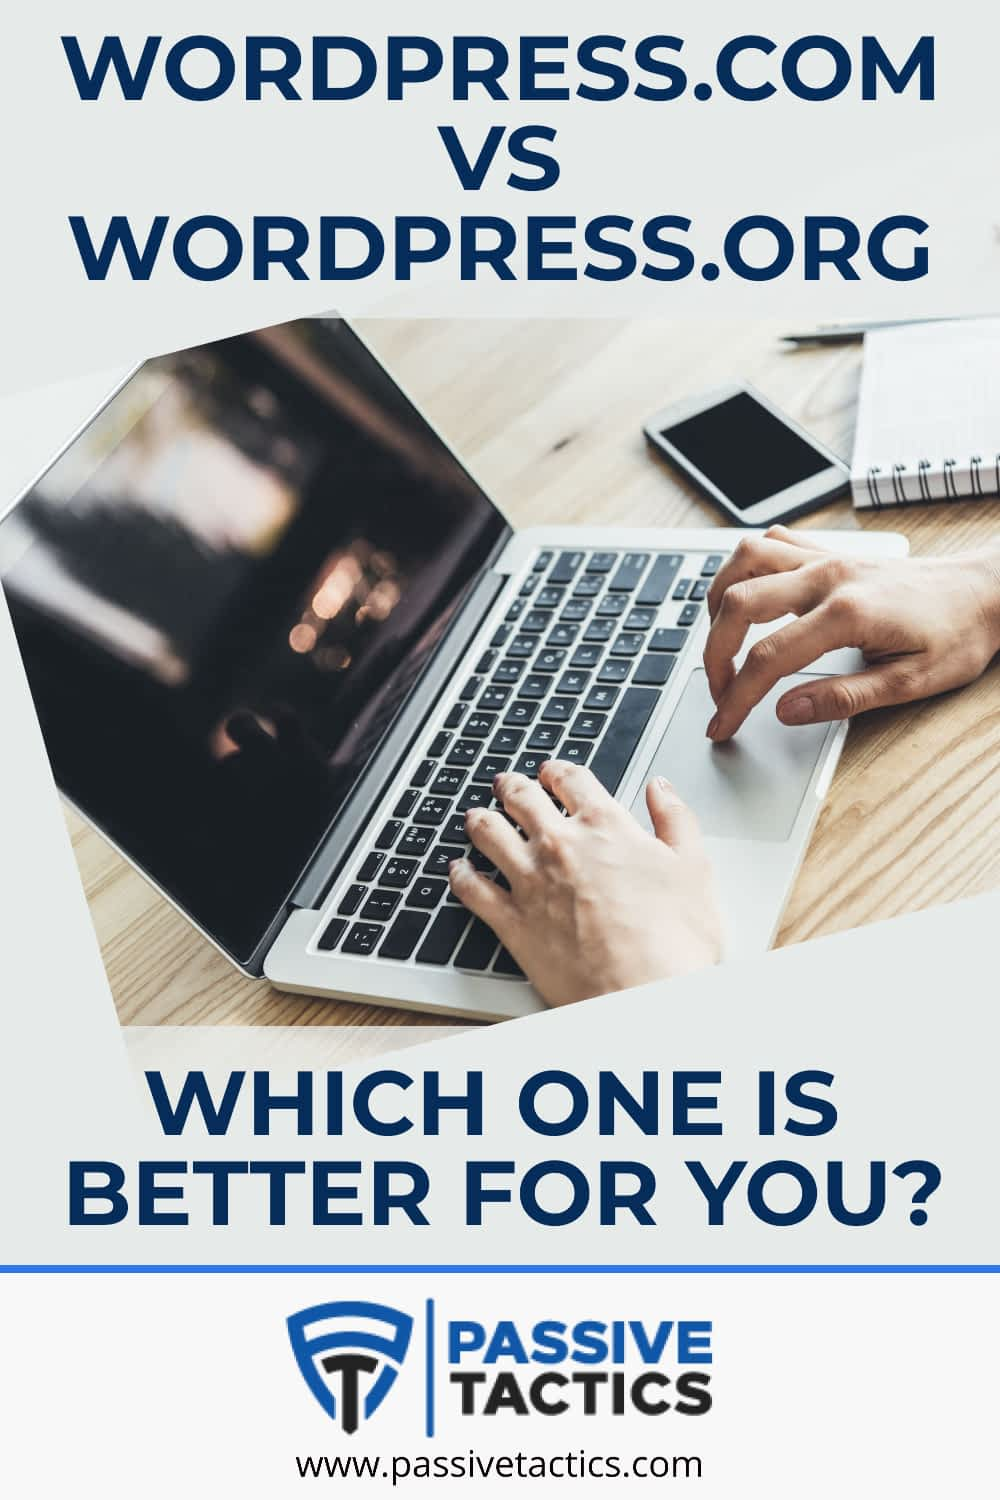 WordPress.com VS WordPress.org: Which One Is Better For You?